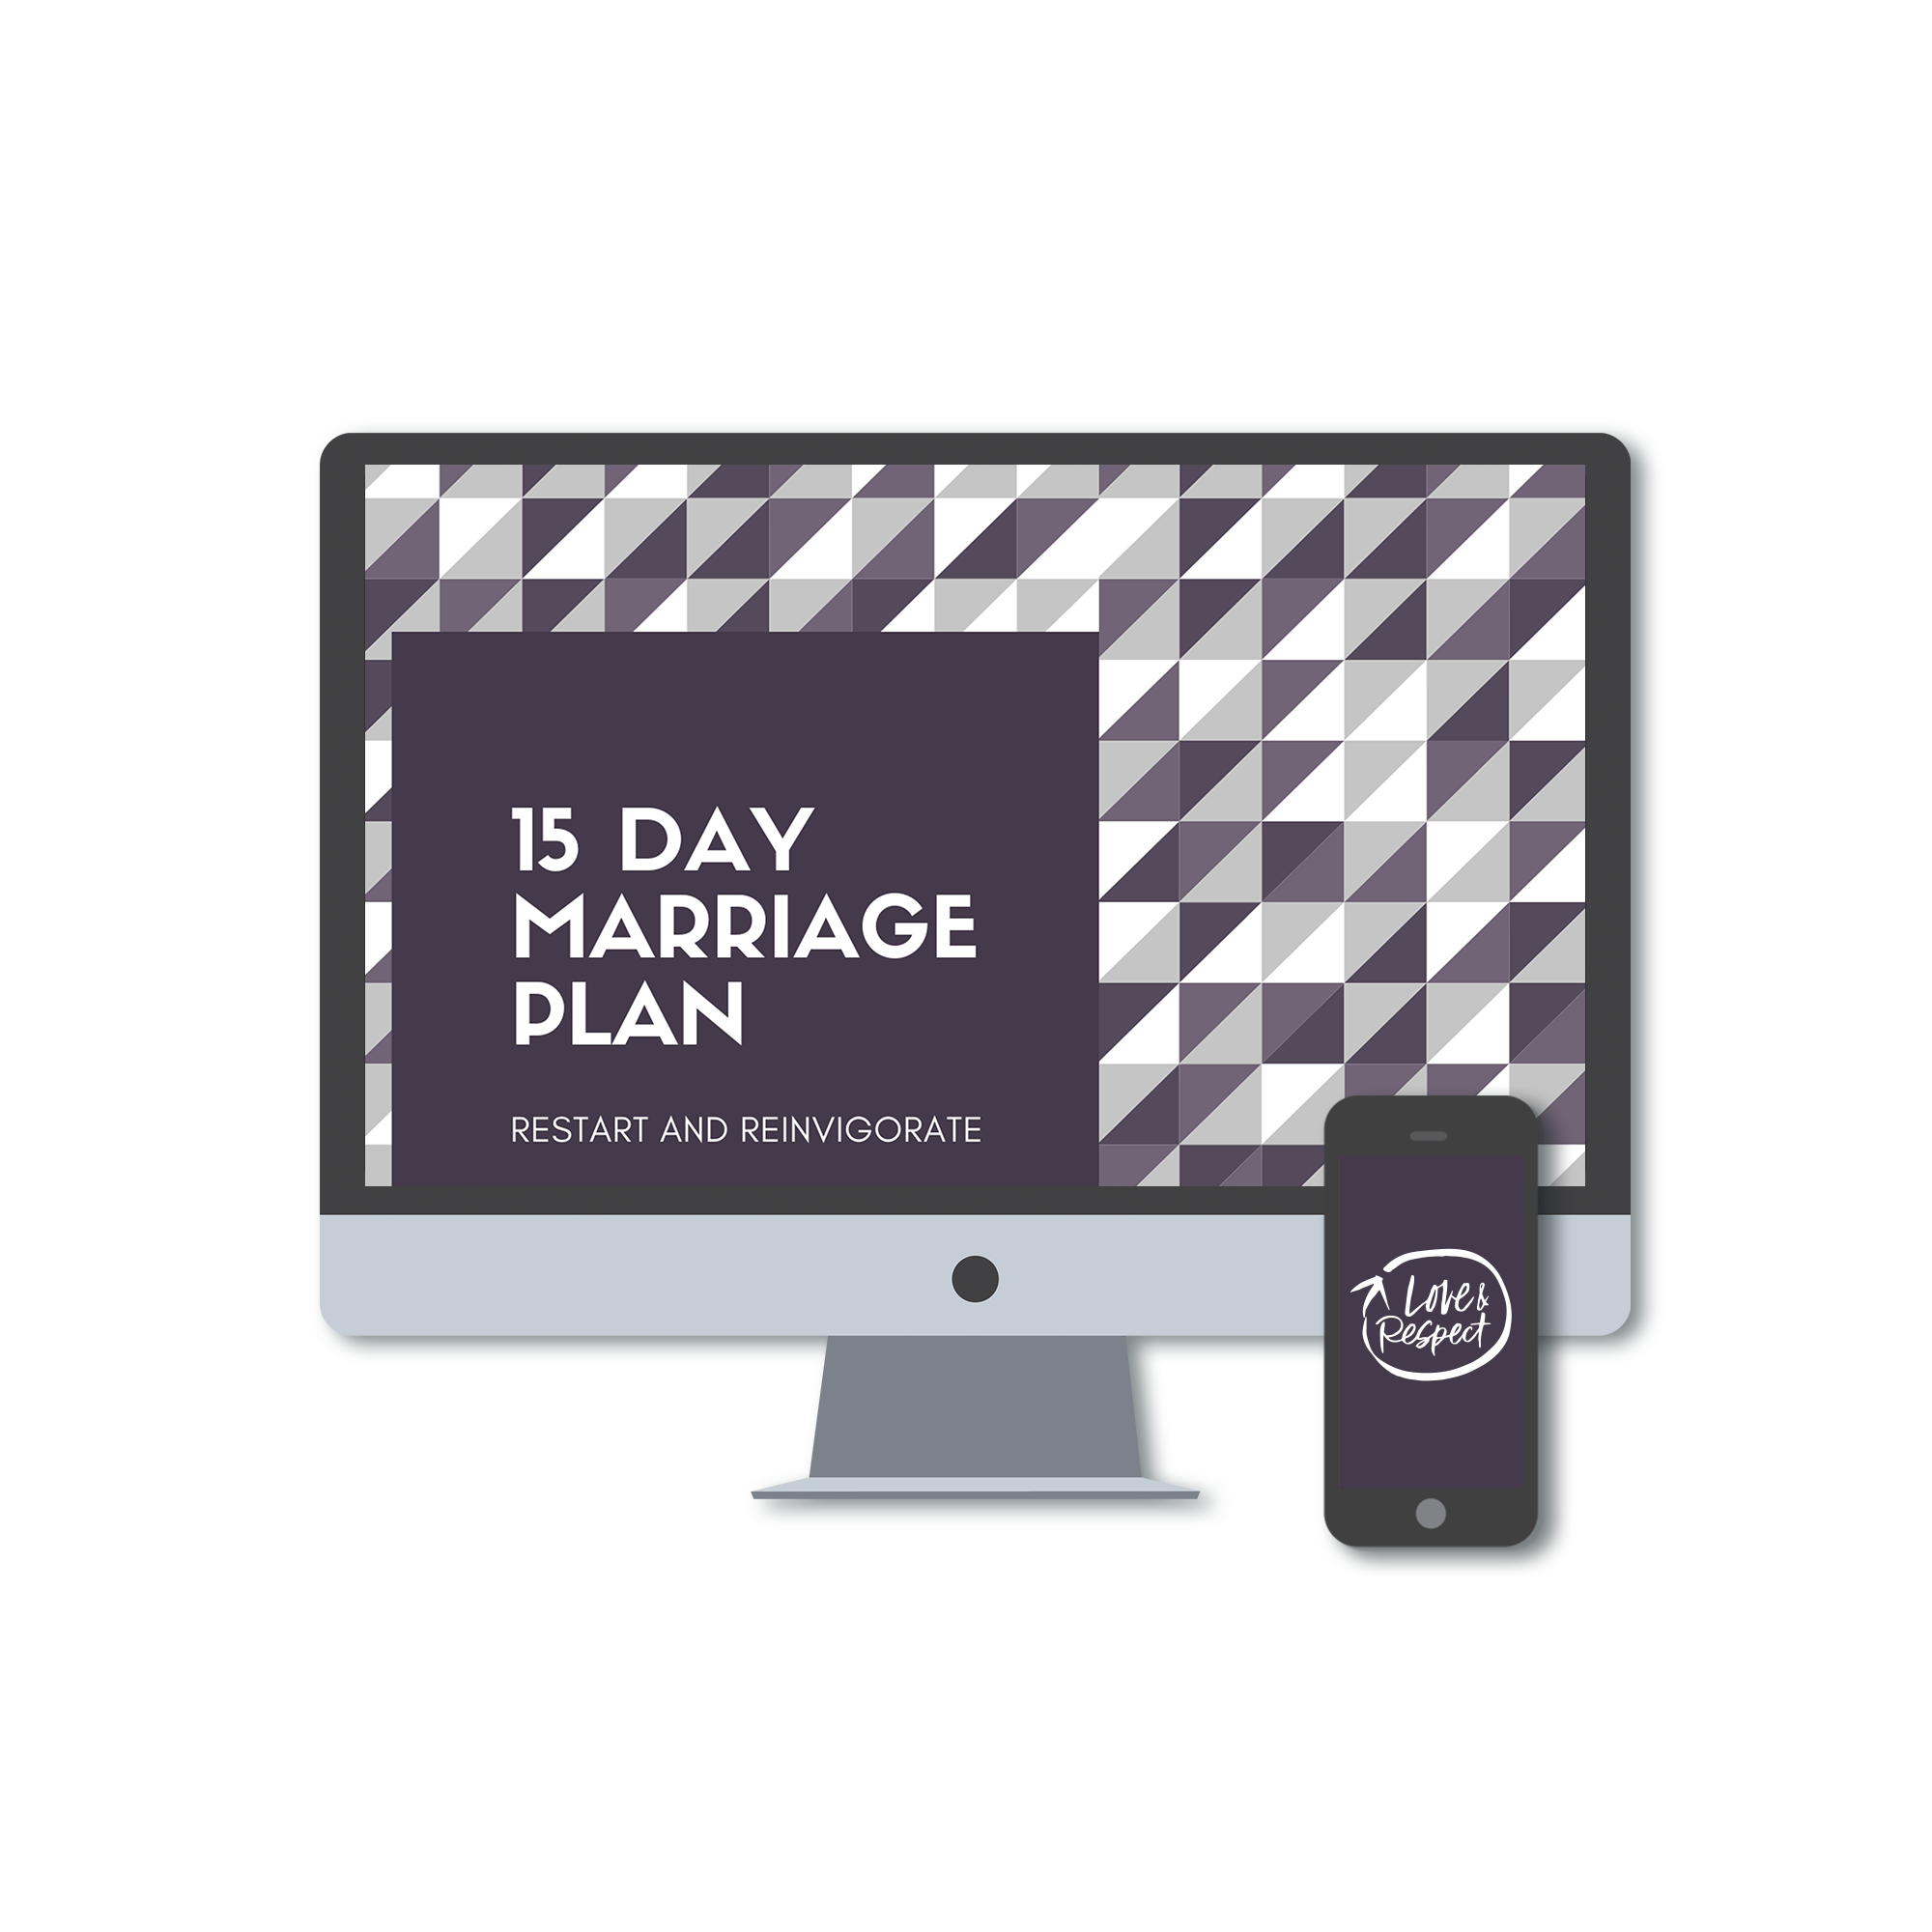 Restart and Reinvigorate - Perfect for all marriages. 7 Emails over 15 Days. It's free (or pay for video version) and will come straight to your inbox, Approximately 40,000 people have gone through the plan.